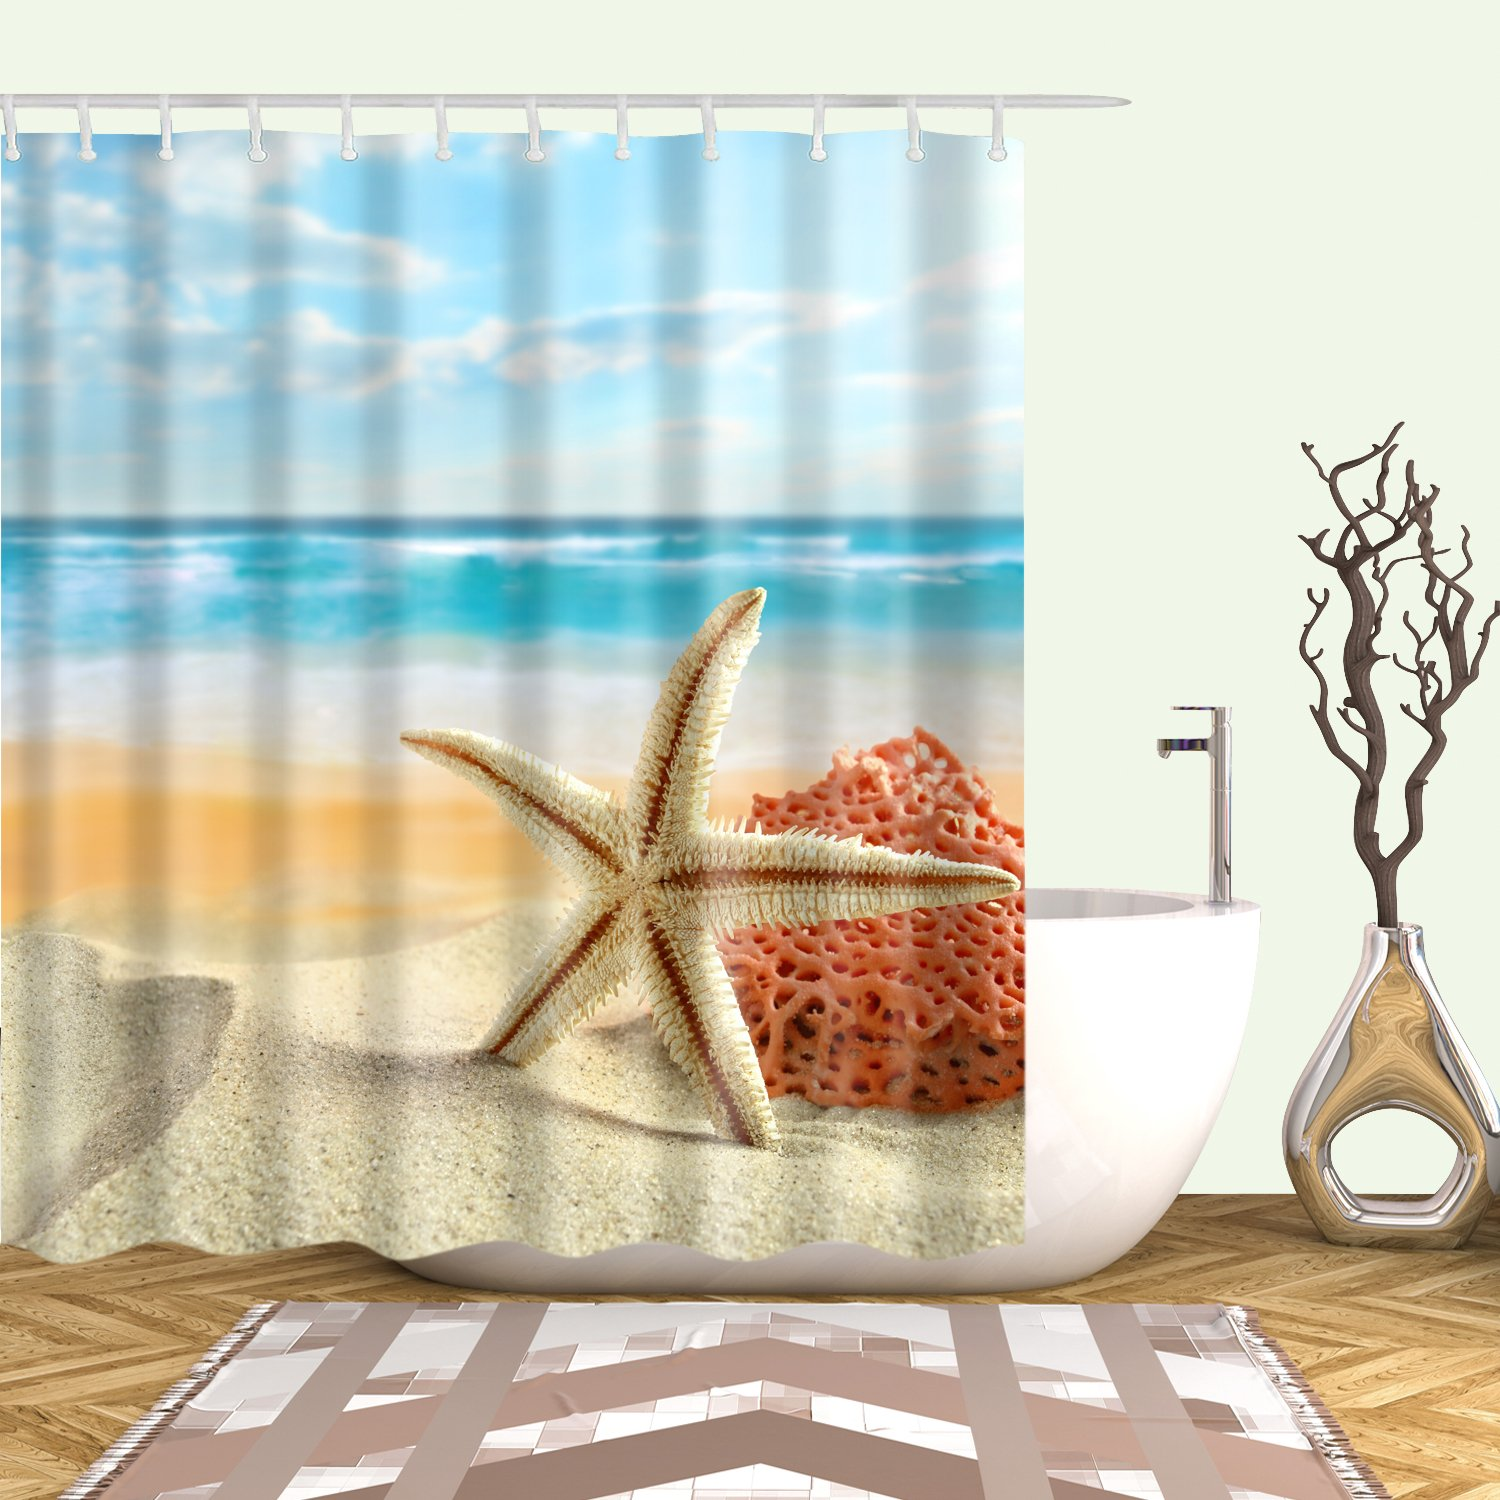 White Starfish Shower Curtain Orange Coral Seashell Beach Bathroom Curtains Bathroom Decor Beach Bathrooms Bathroom Red Bathroom Curtains